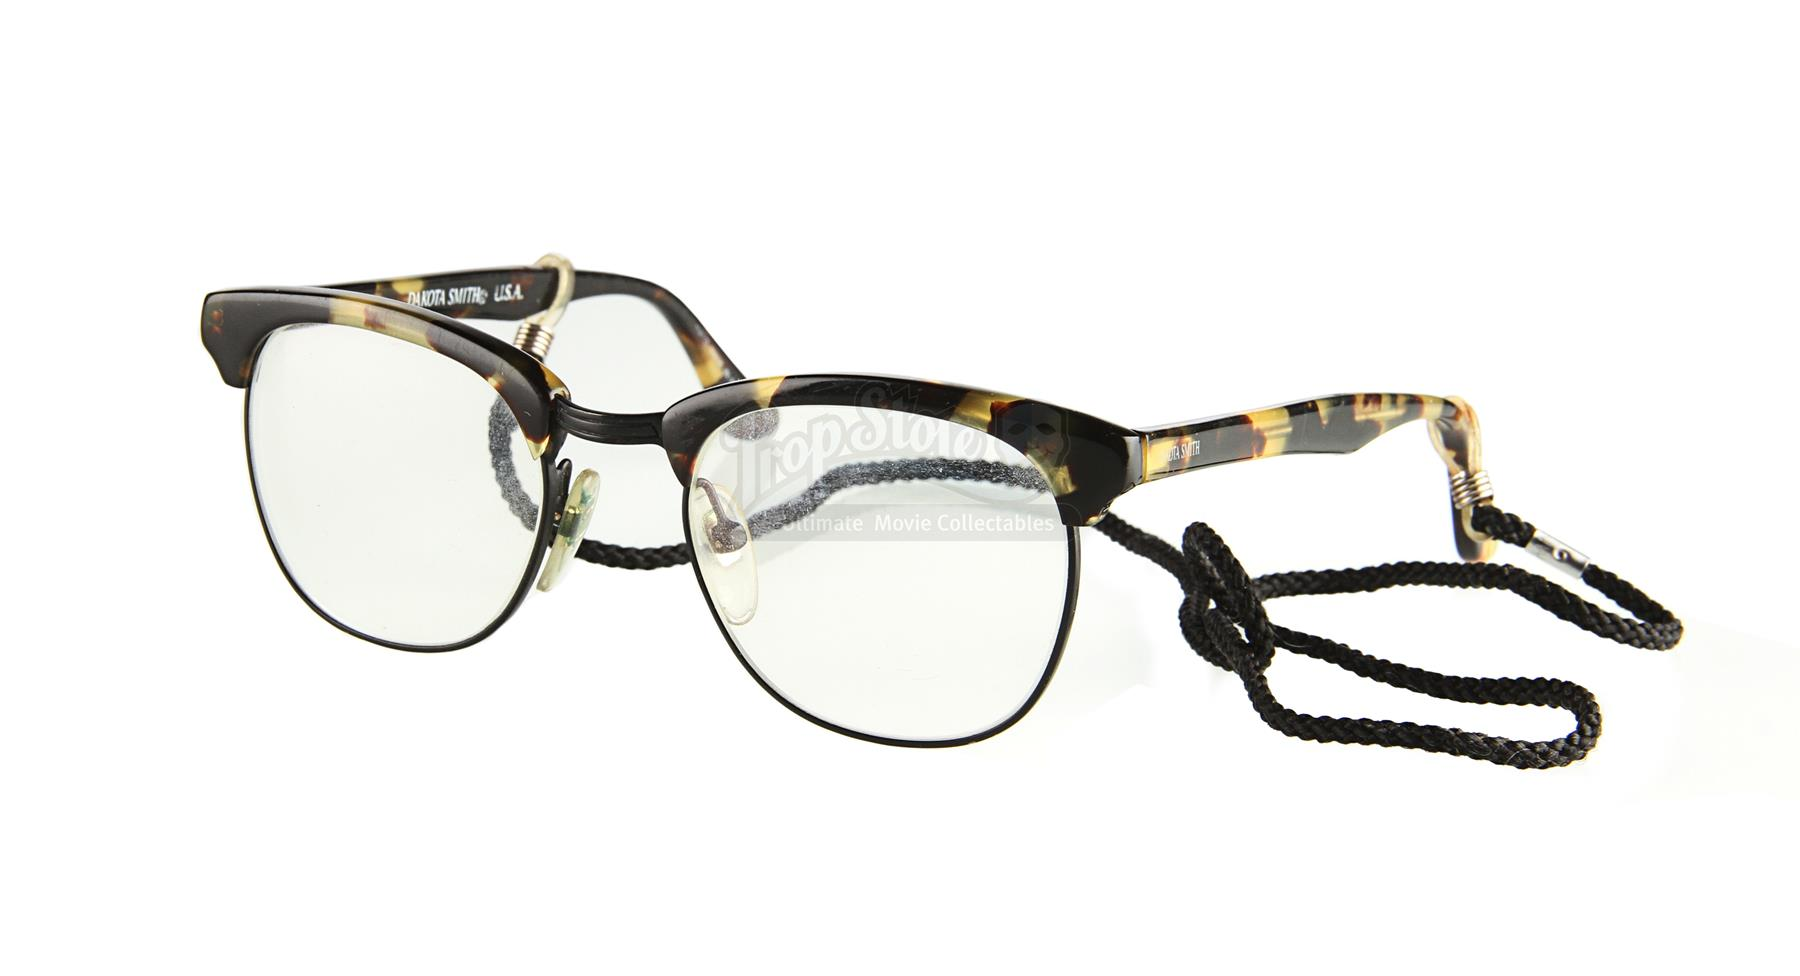 DIE HARD WITH A VENGEANCE Zeus Carvers Samuel L Jackson - What is invoice processing online glasses store